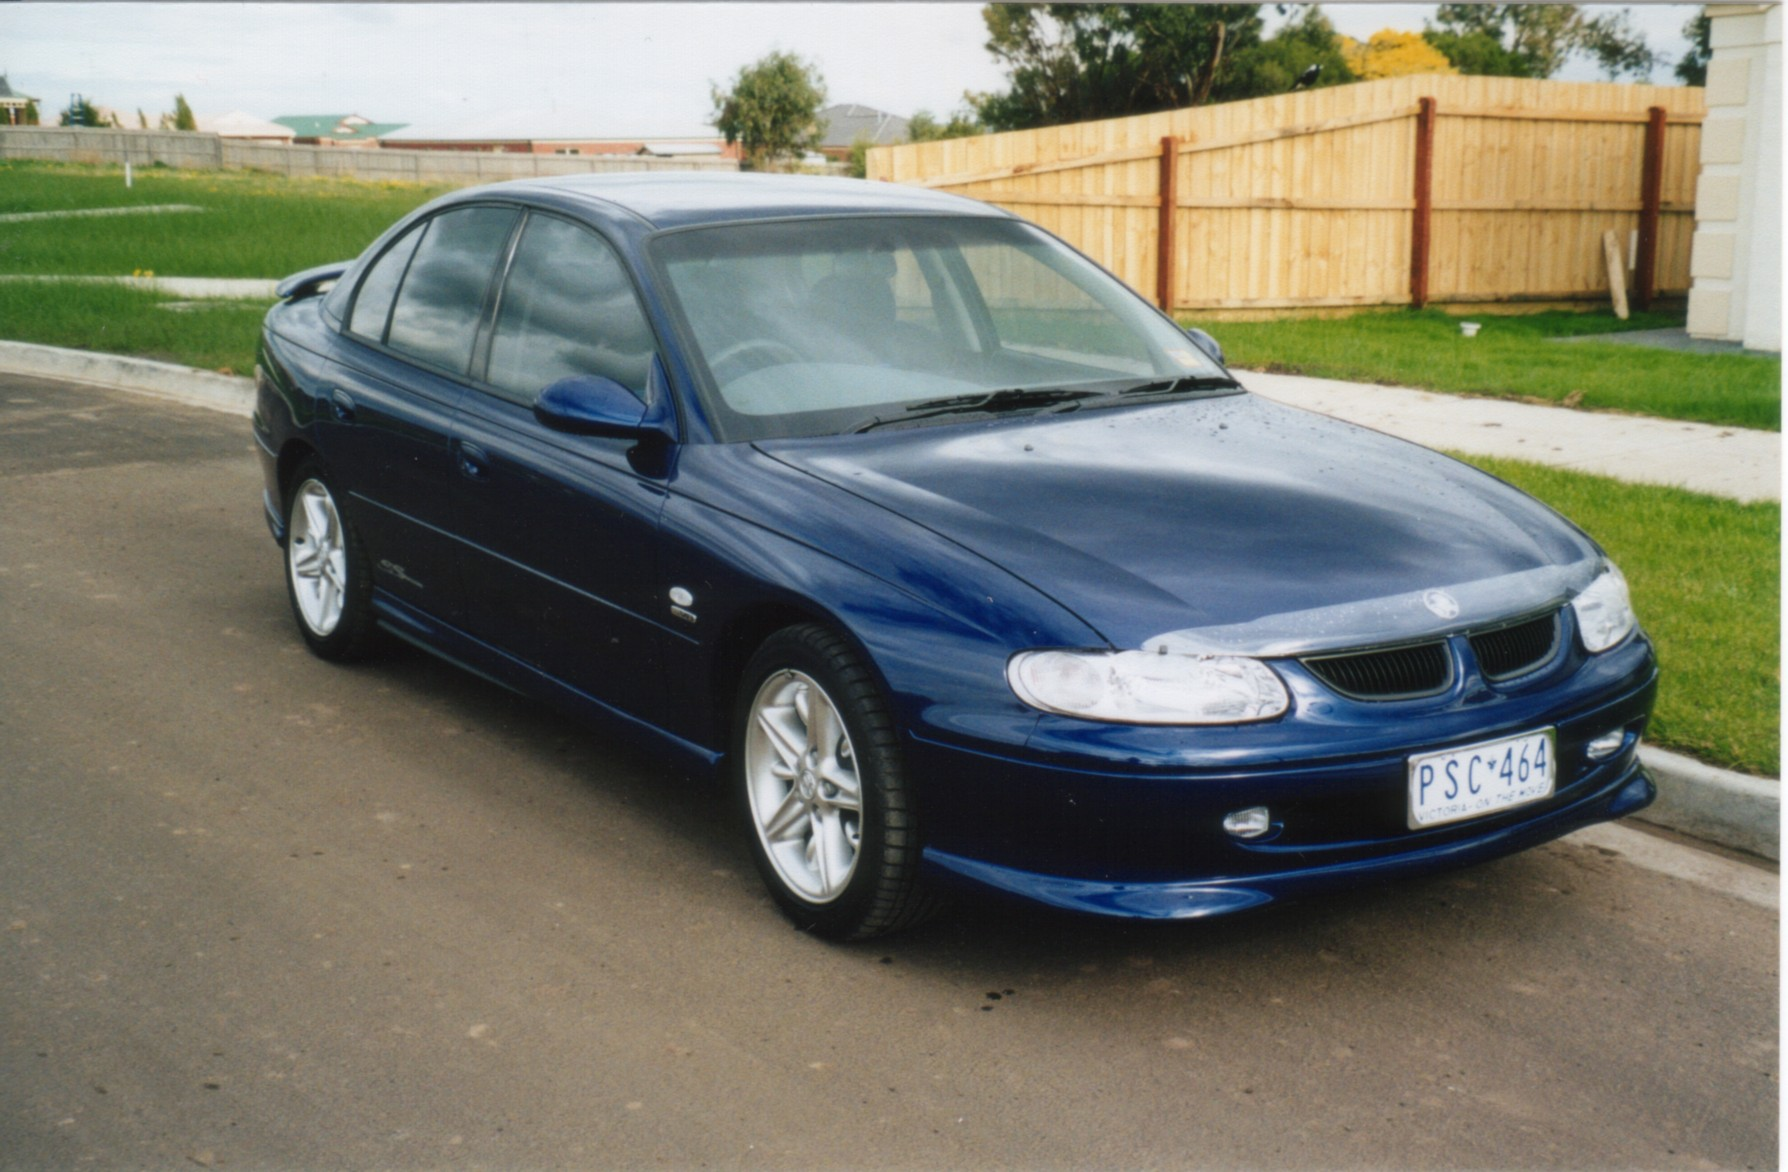 1999 VT Series II Holden Commodore SS